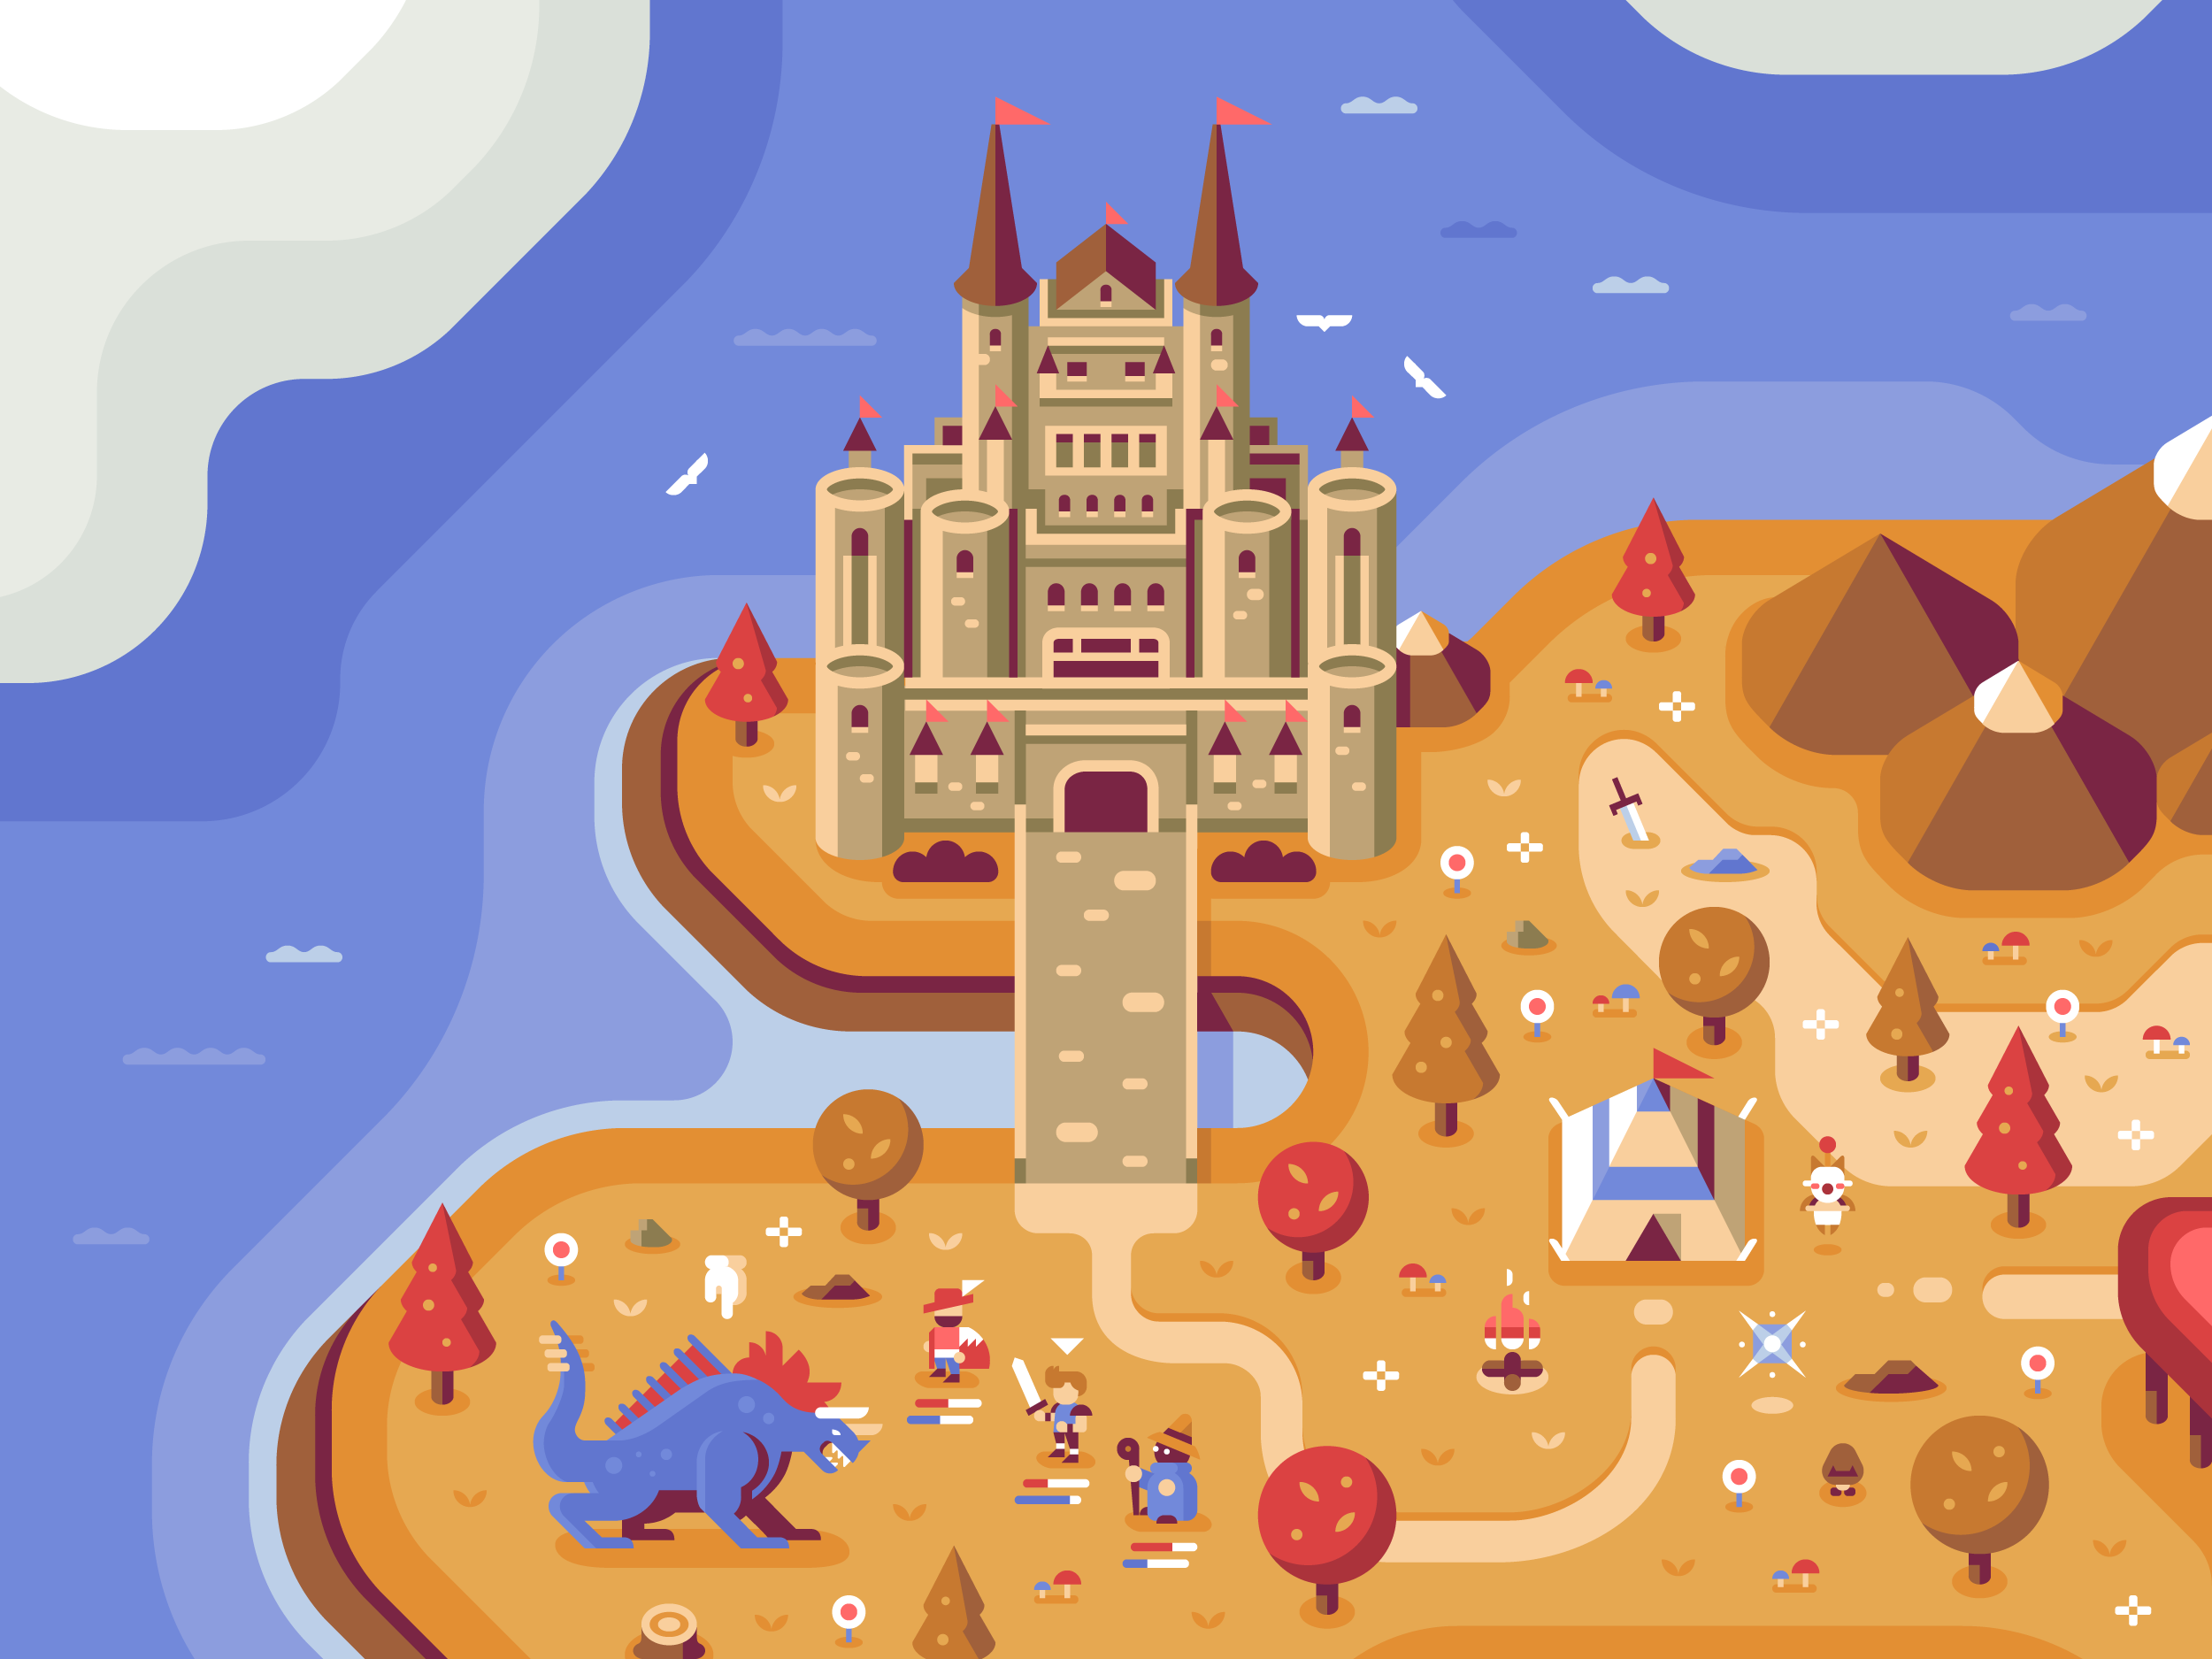 Final Fantasy Castle, Discord Office Mural illustrations by Matt Anderson and Canopy Design and Illustration